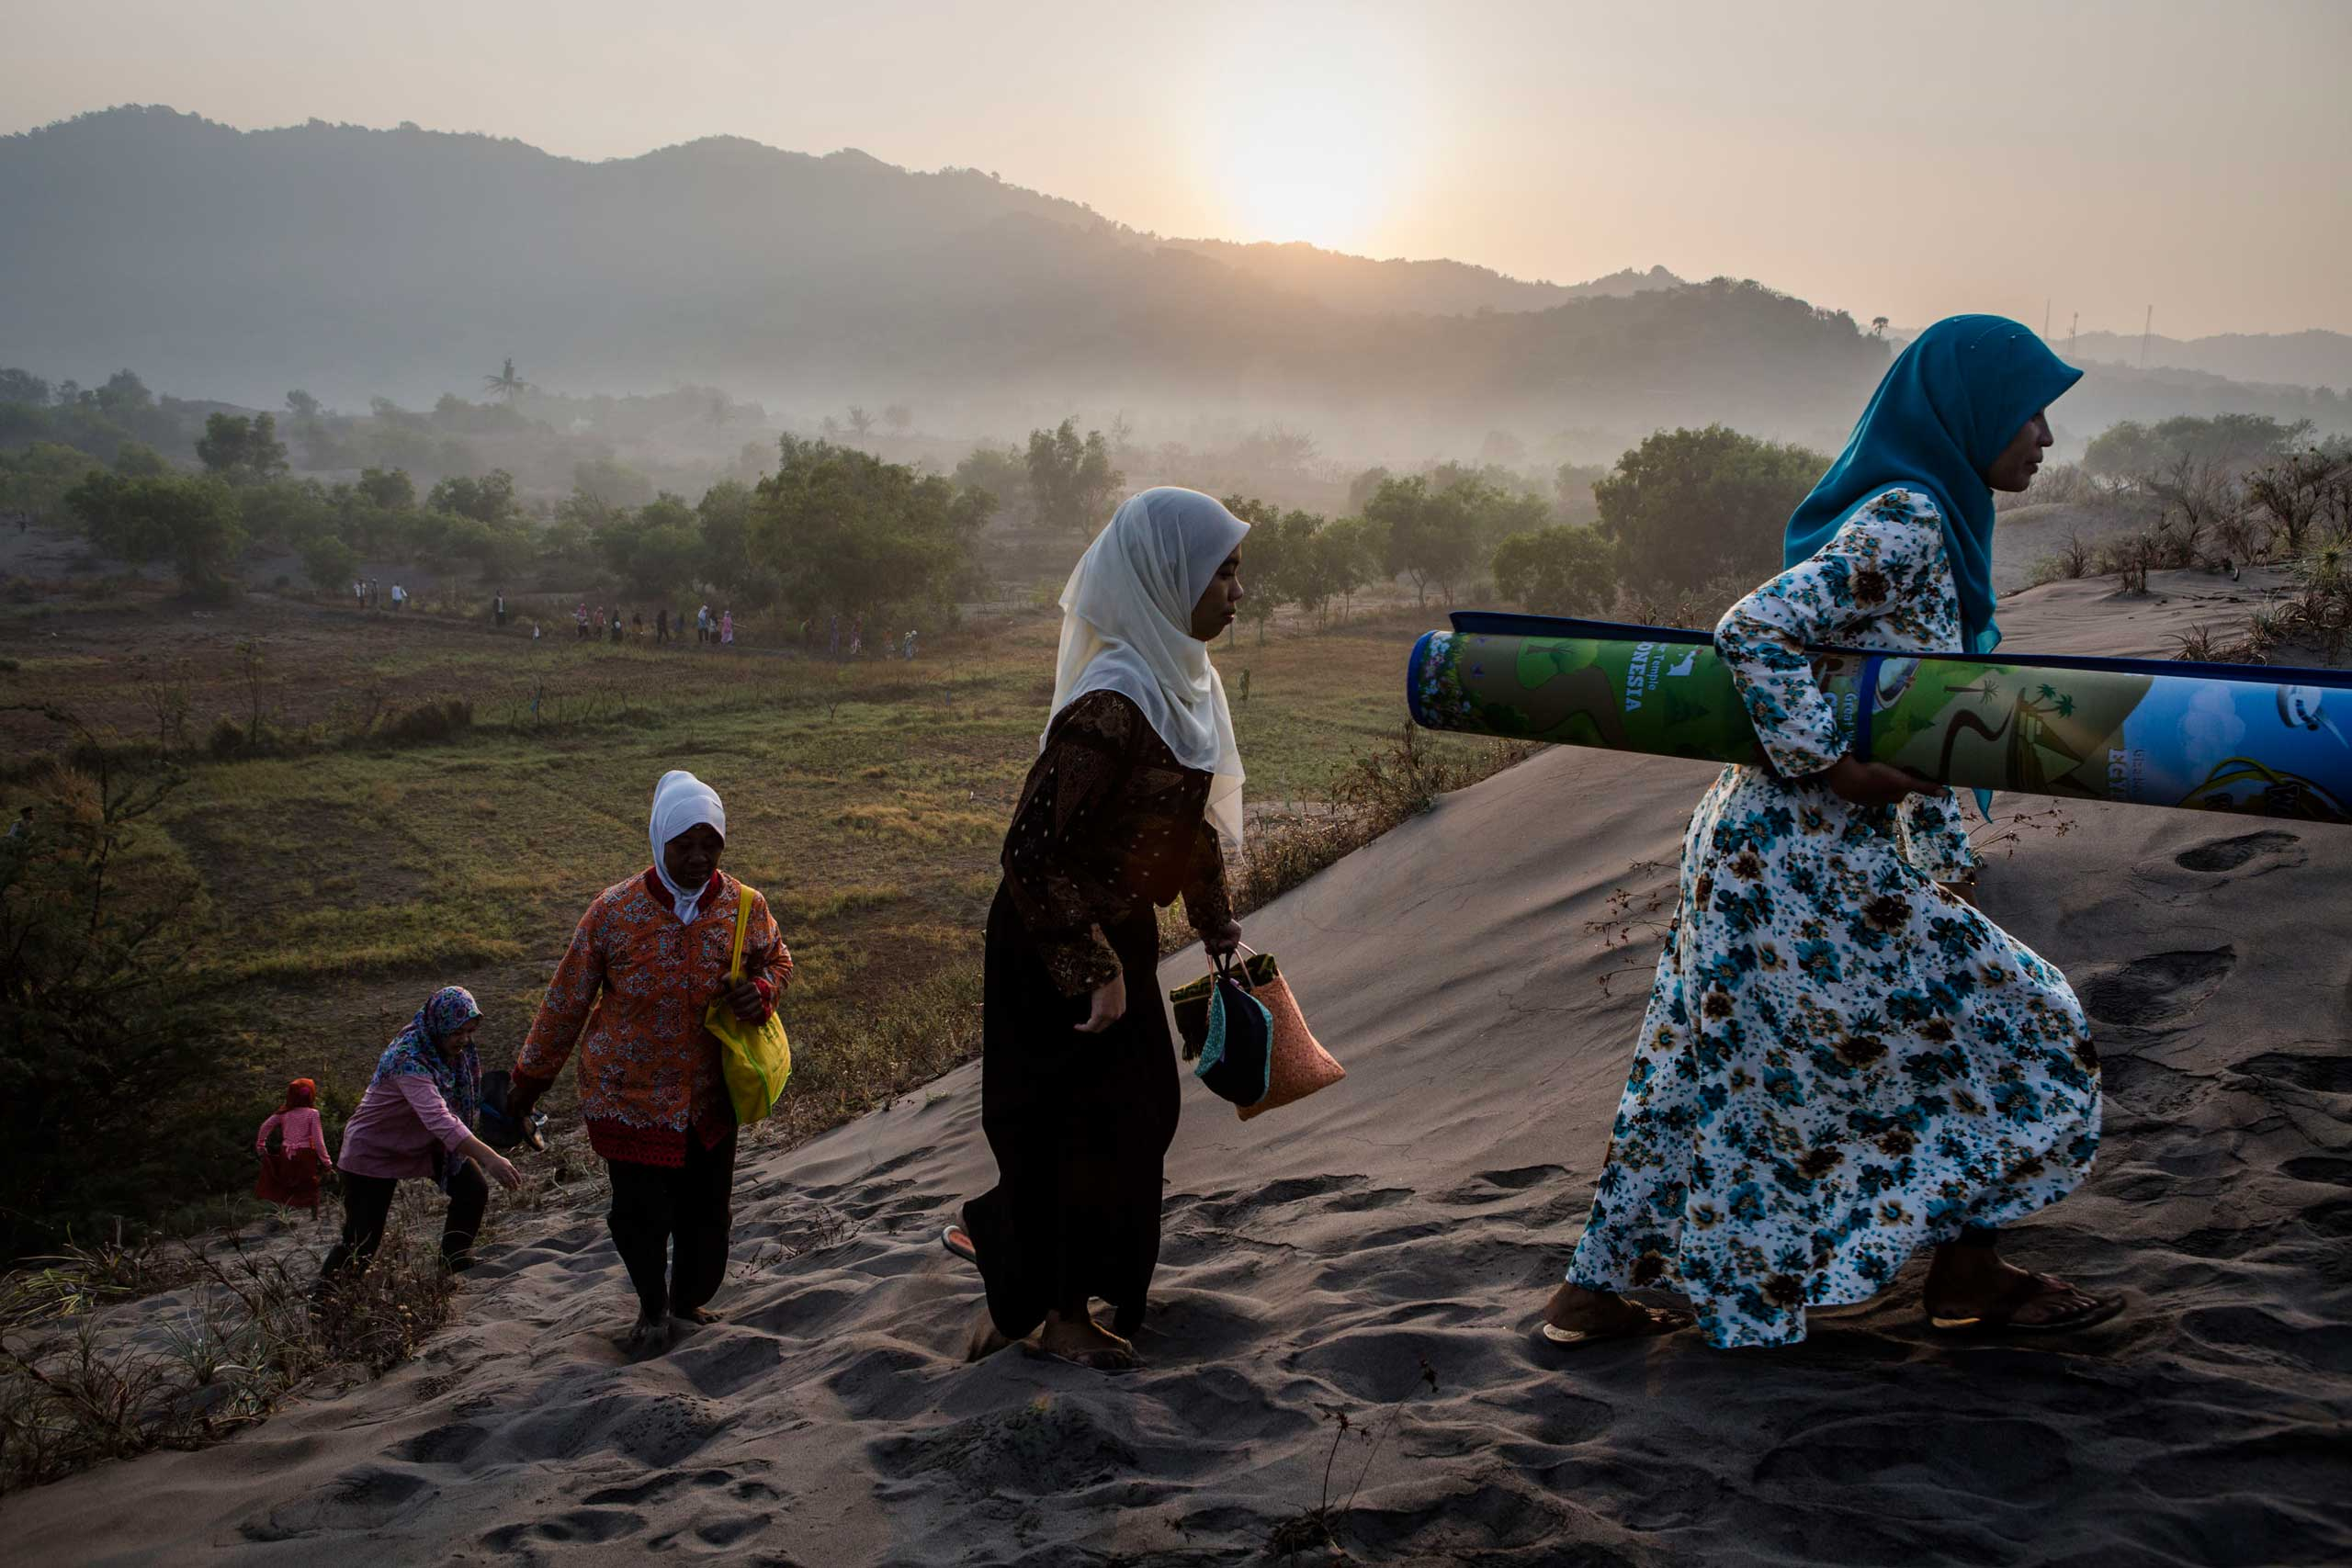 Indonesian muslims walk on 'sea of sands' as they prepare for Eid Al-Fitr prayer at Parangkusumo beach in Yogyakarta, Indonesia, on July 17, 2015.